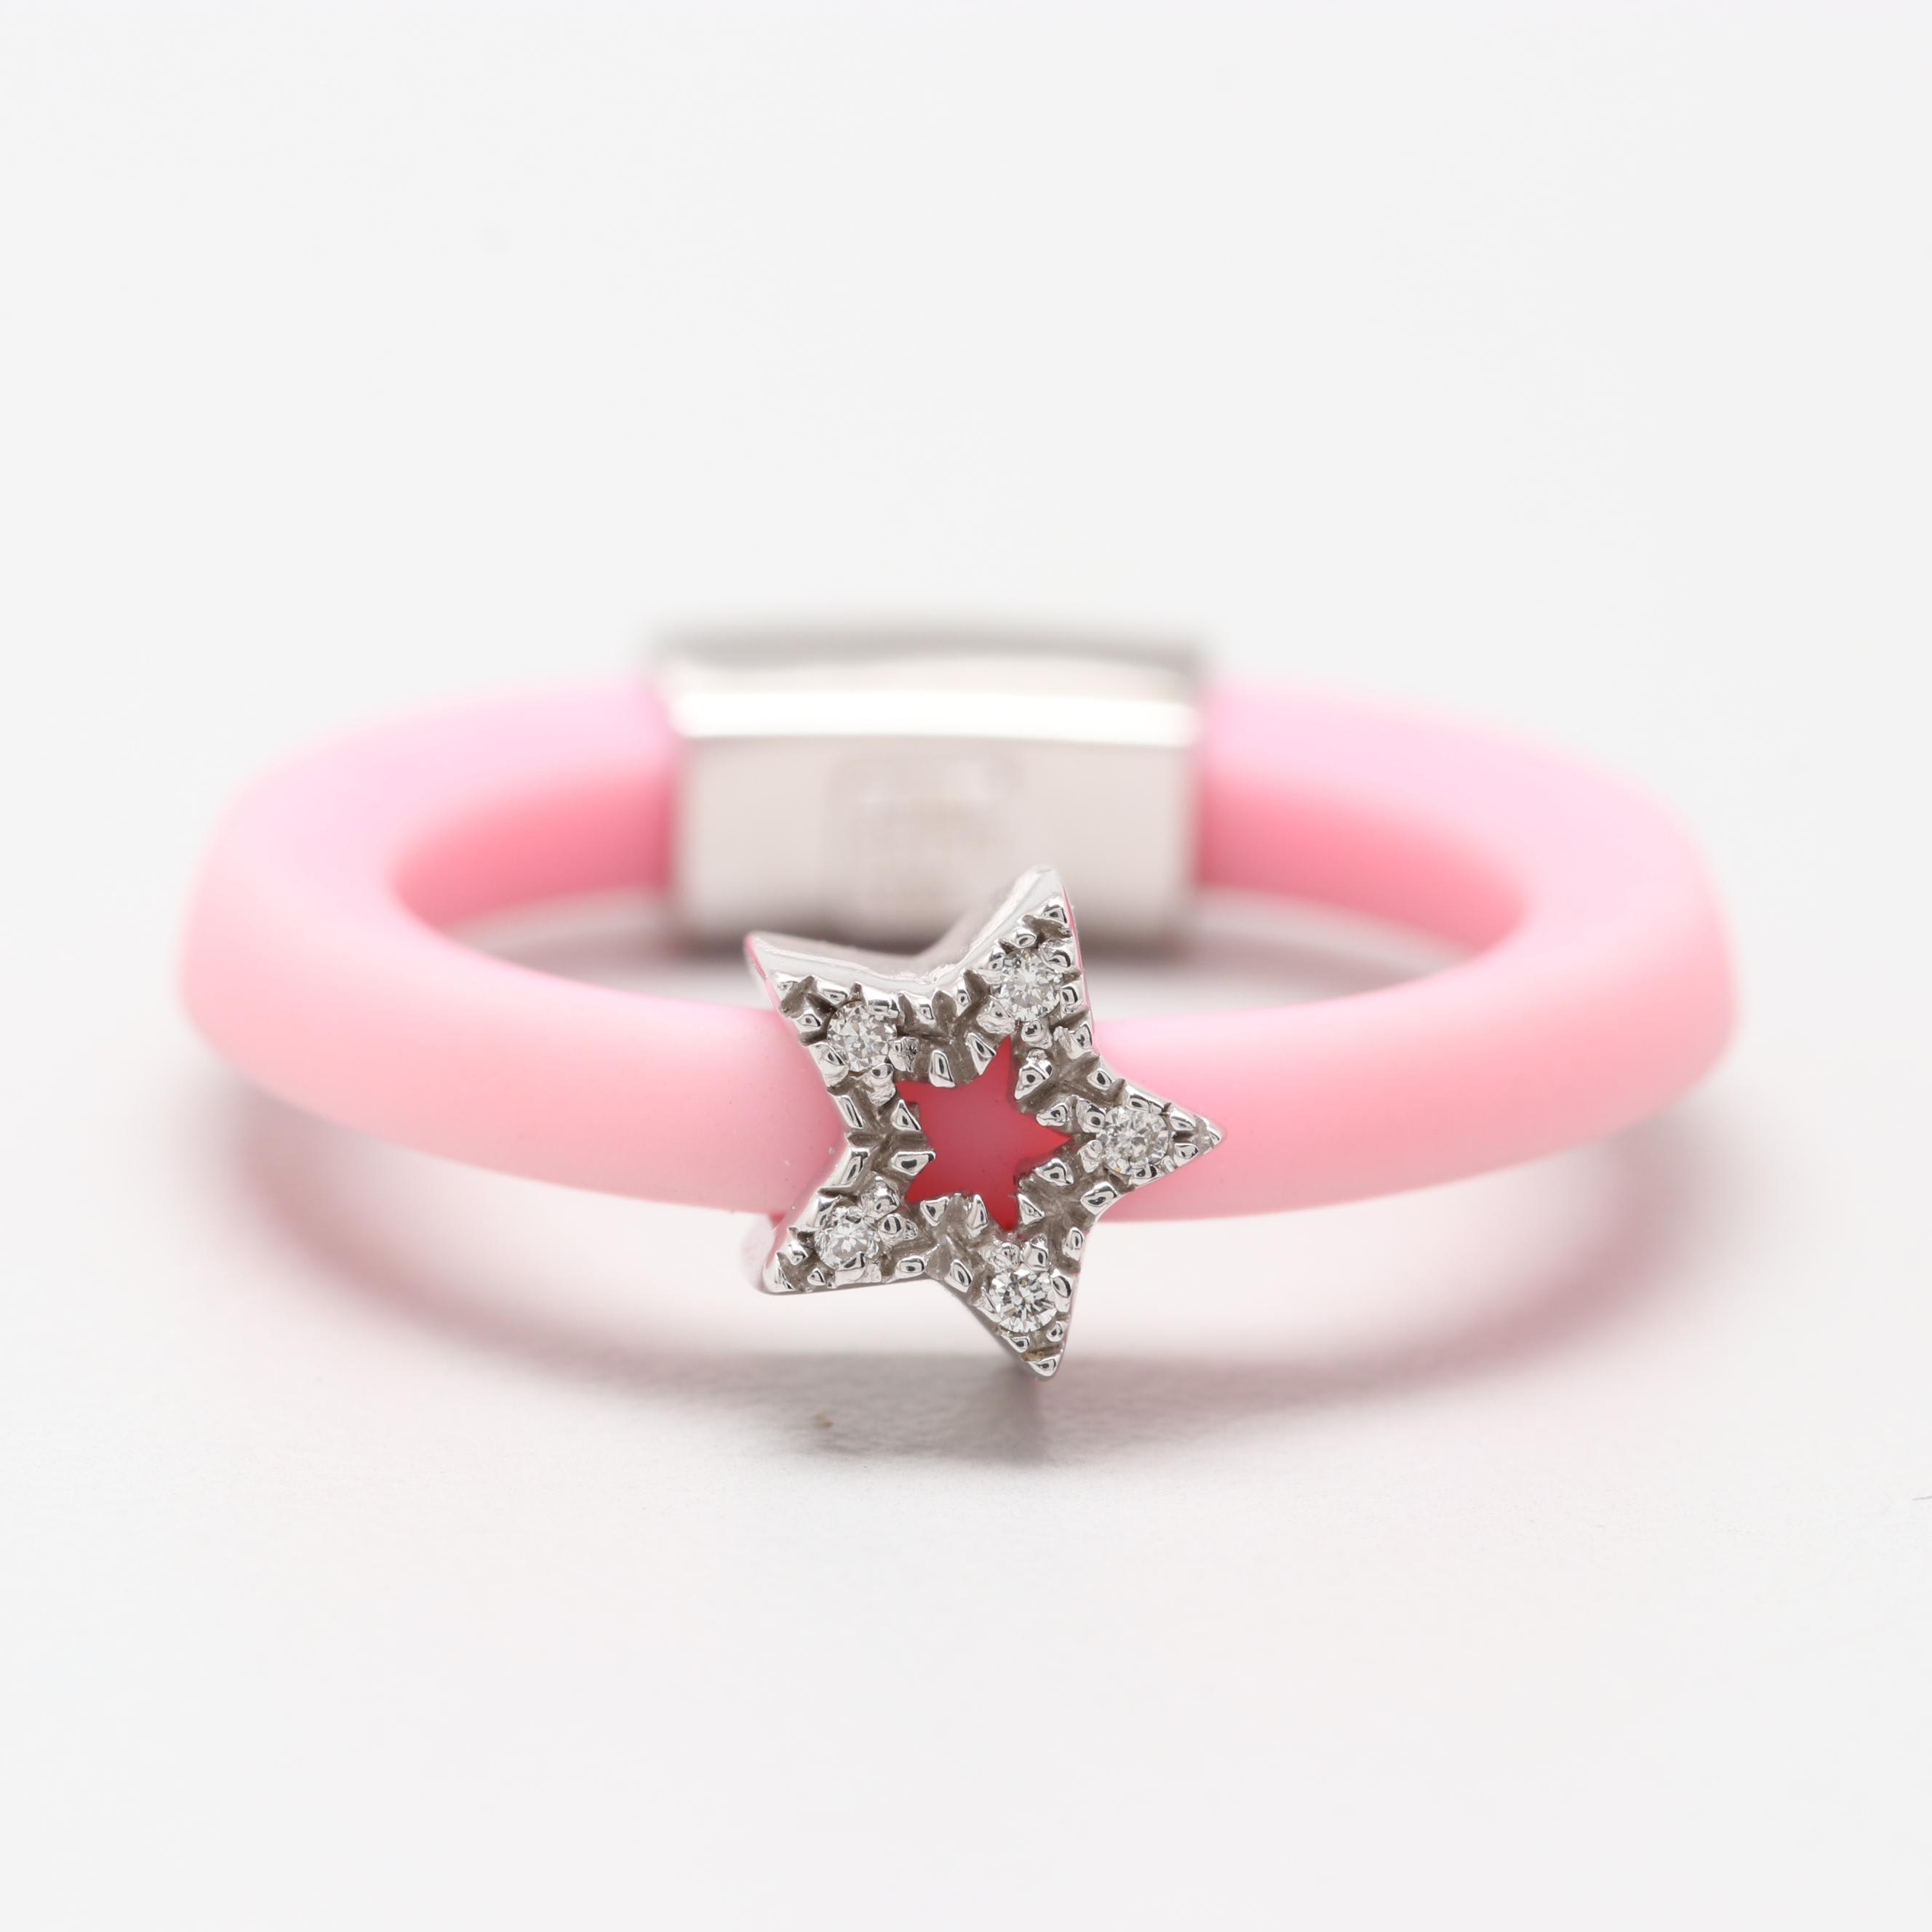 Elite Italian Pink Rubber Ring with 18K White Gold Diamond Accents